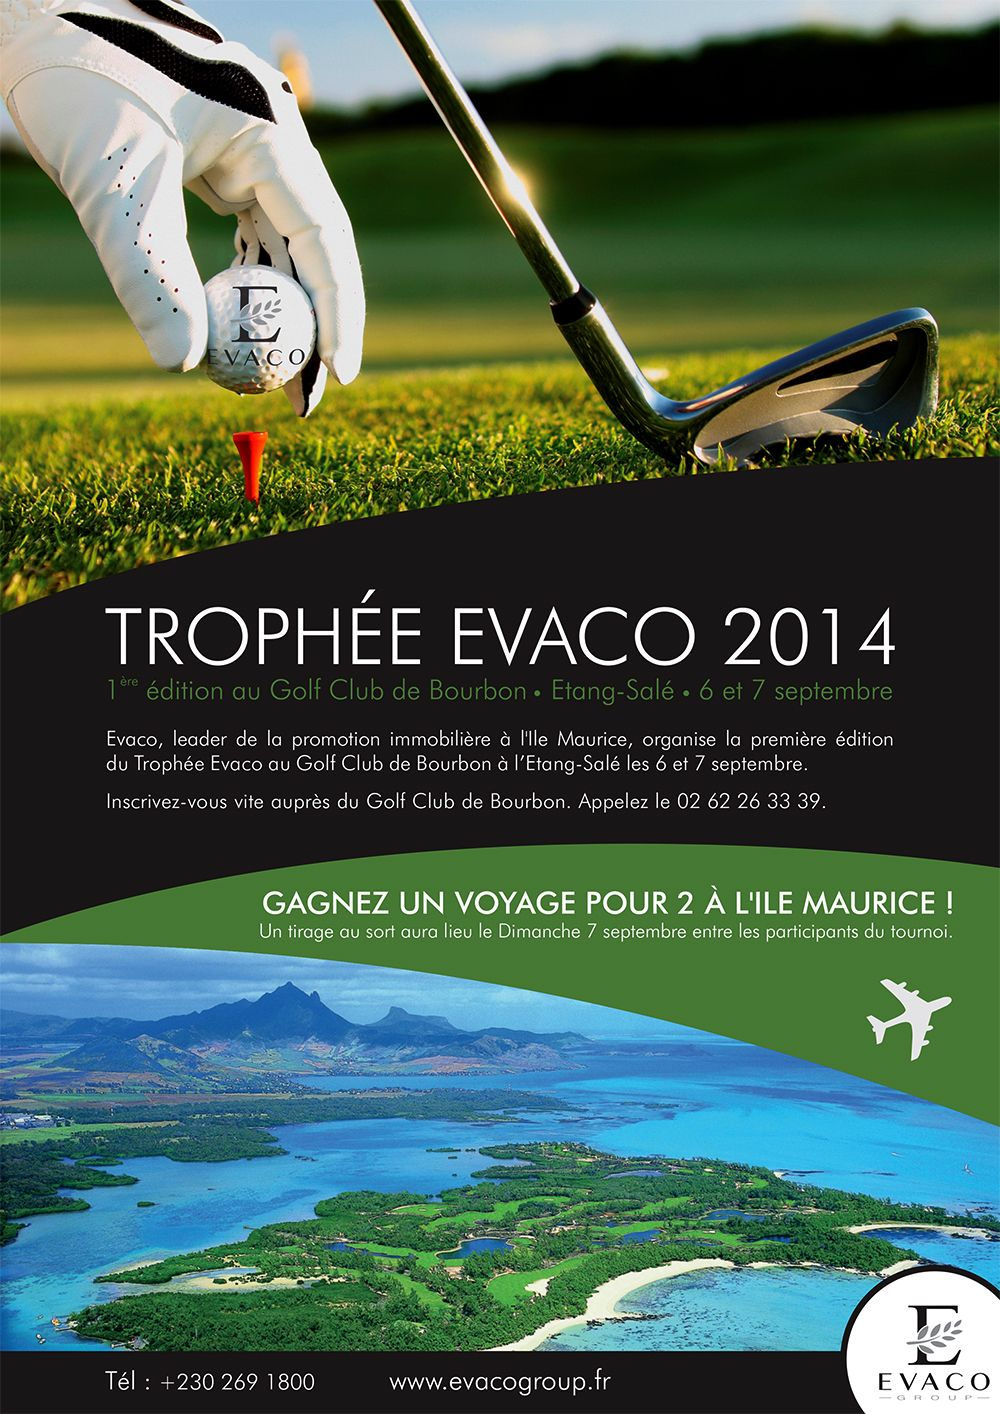 poster evaco golf tournament 2014 reunion island graphic design